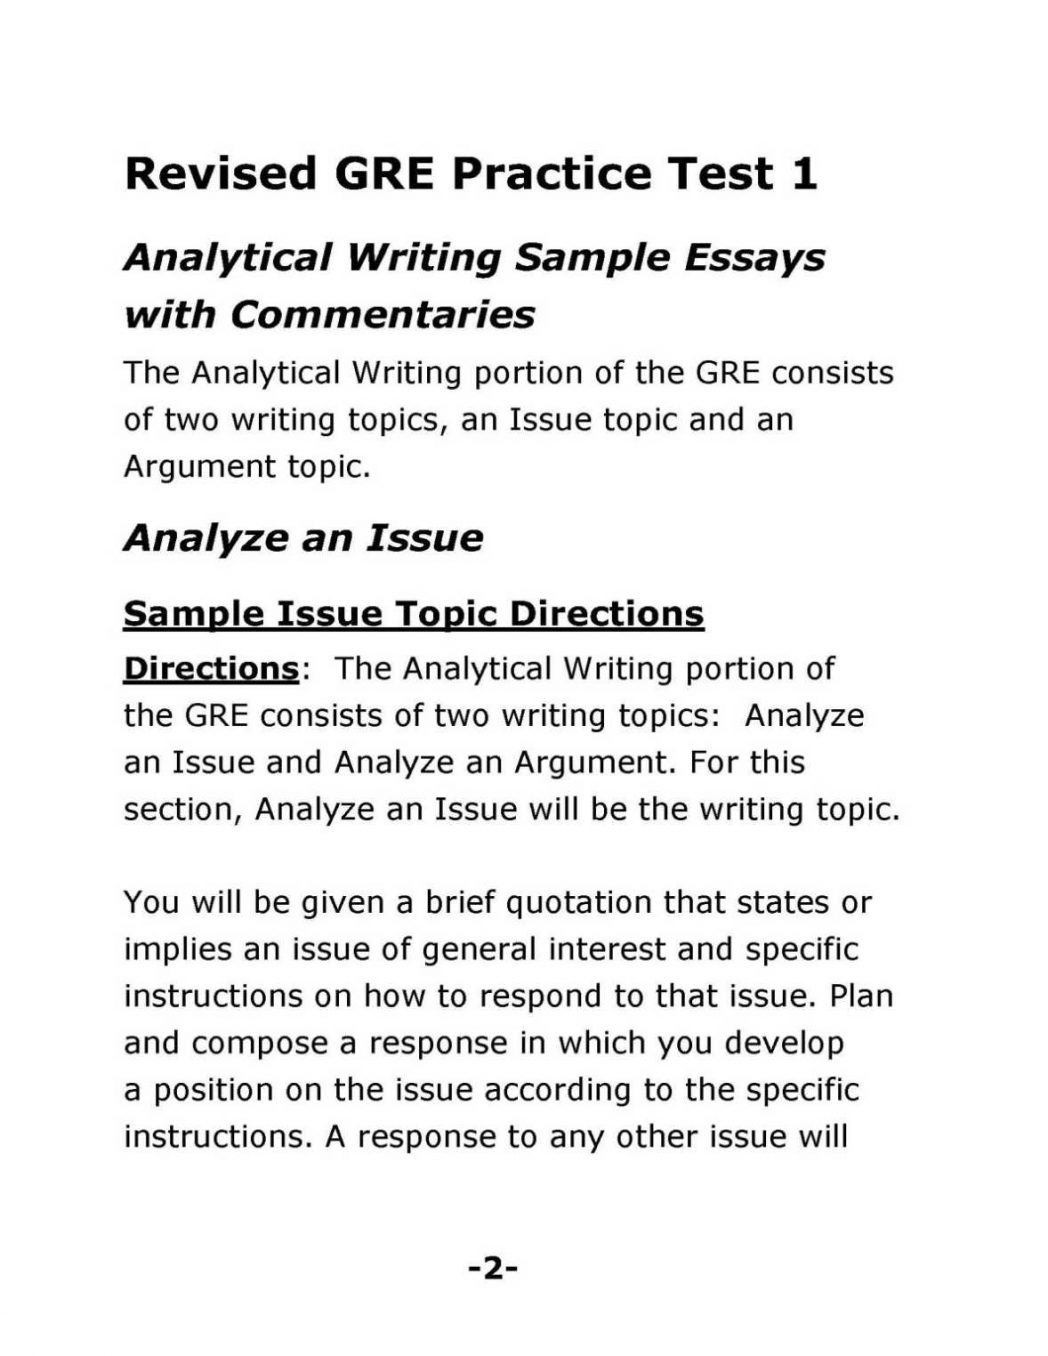 005 Gre Essay Topics Argumentative Analysis Thesis For Literary Questions List Sample Test Papers With Soluti Real Pool Issue Common Answers To Pdf Argument And 1048x1356 Rare Magoosh Full